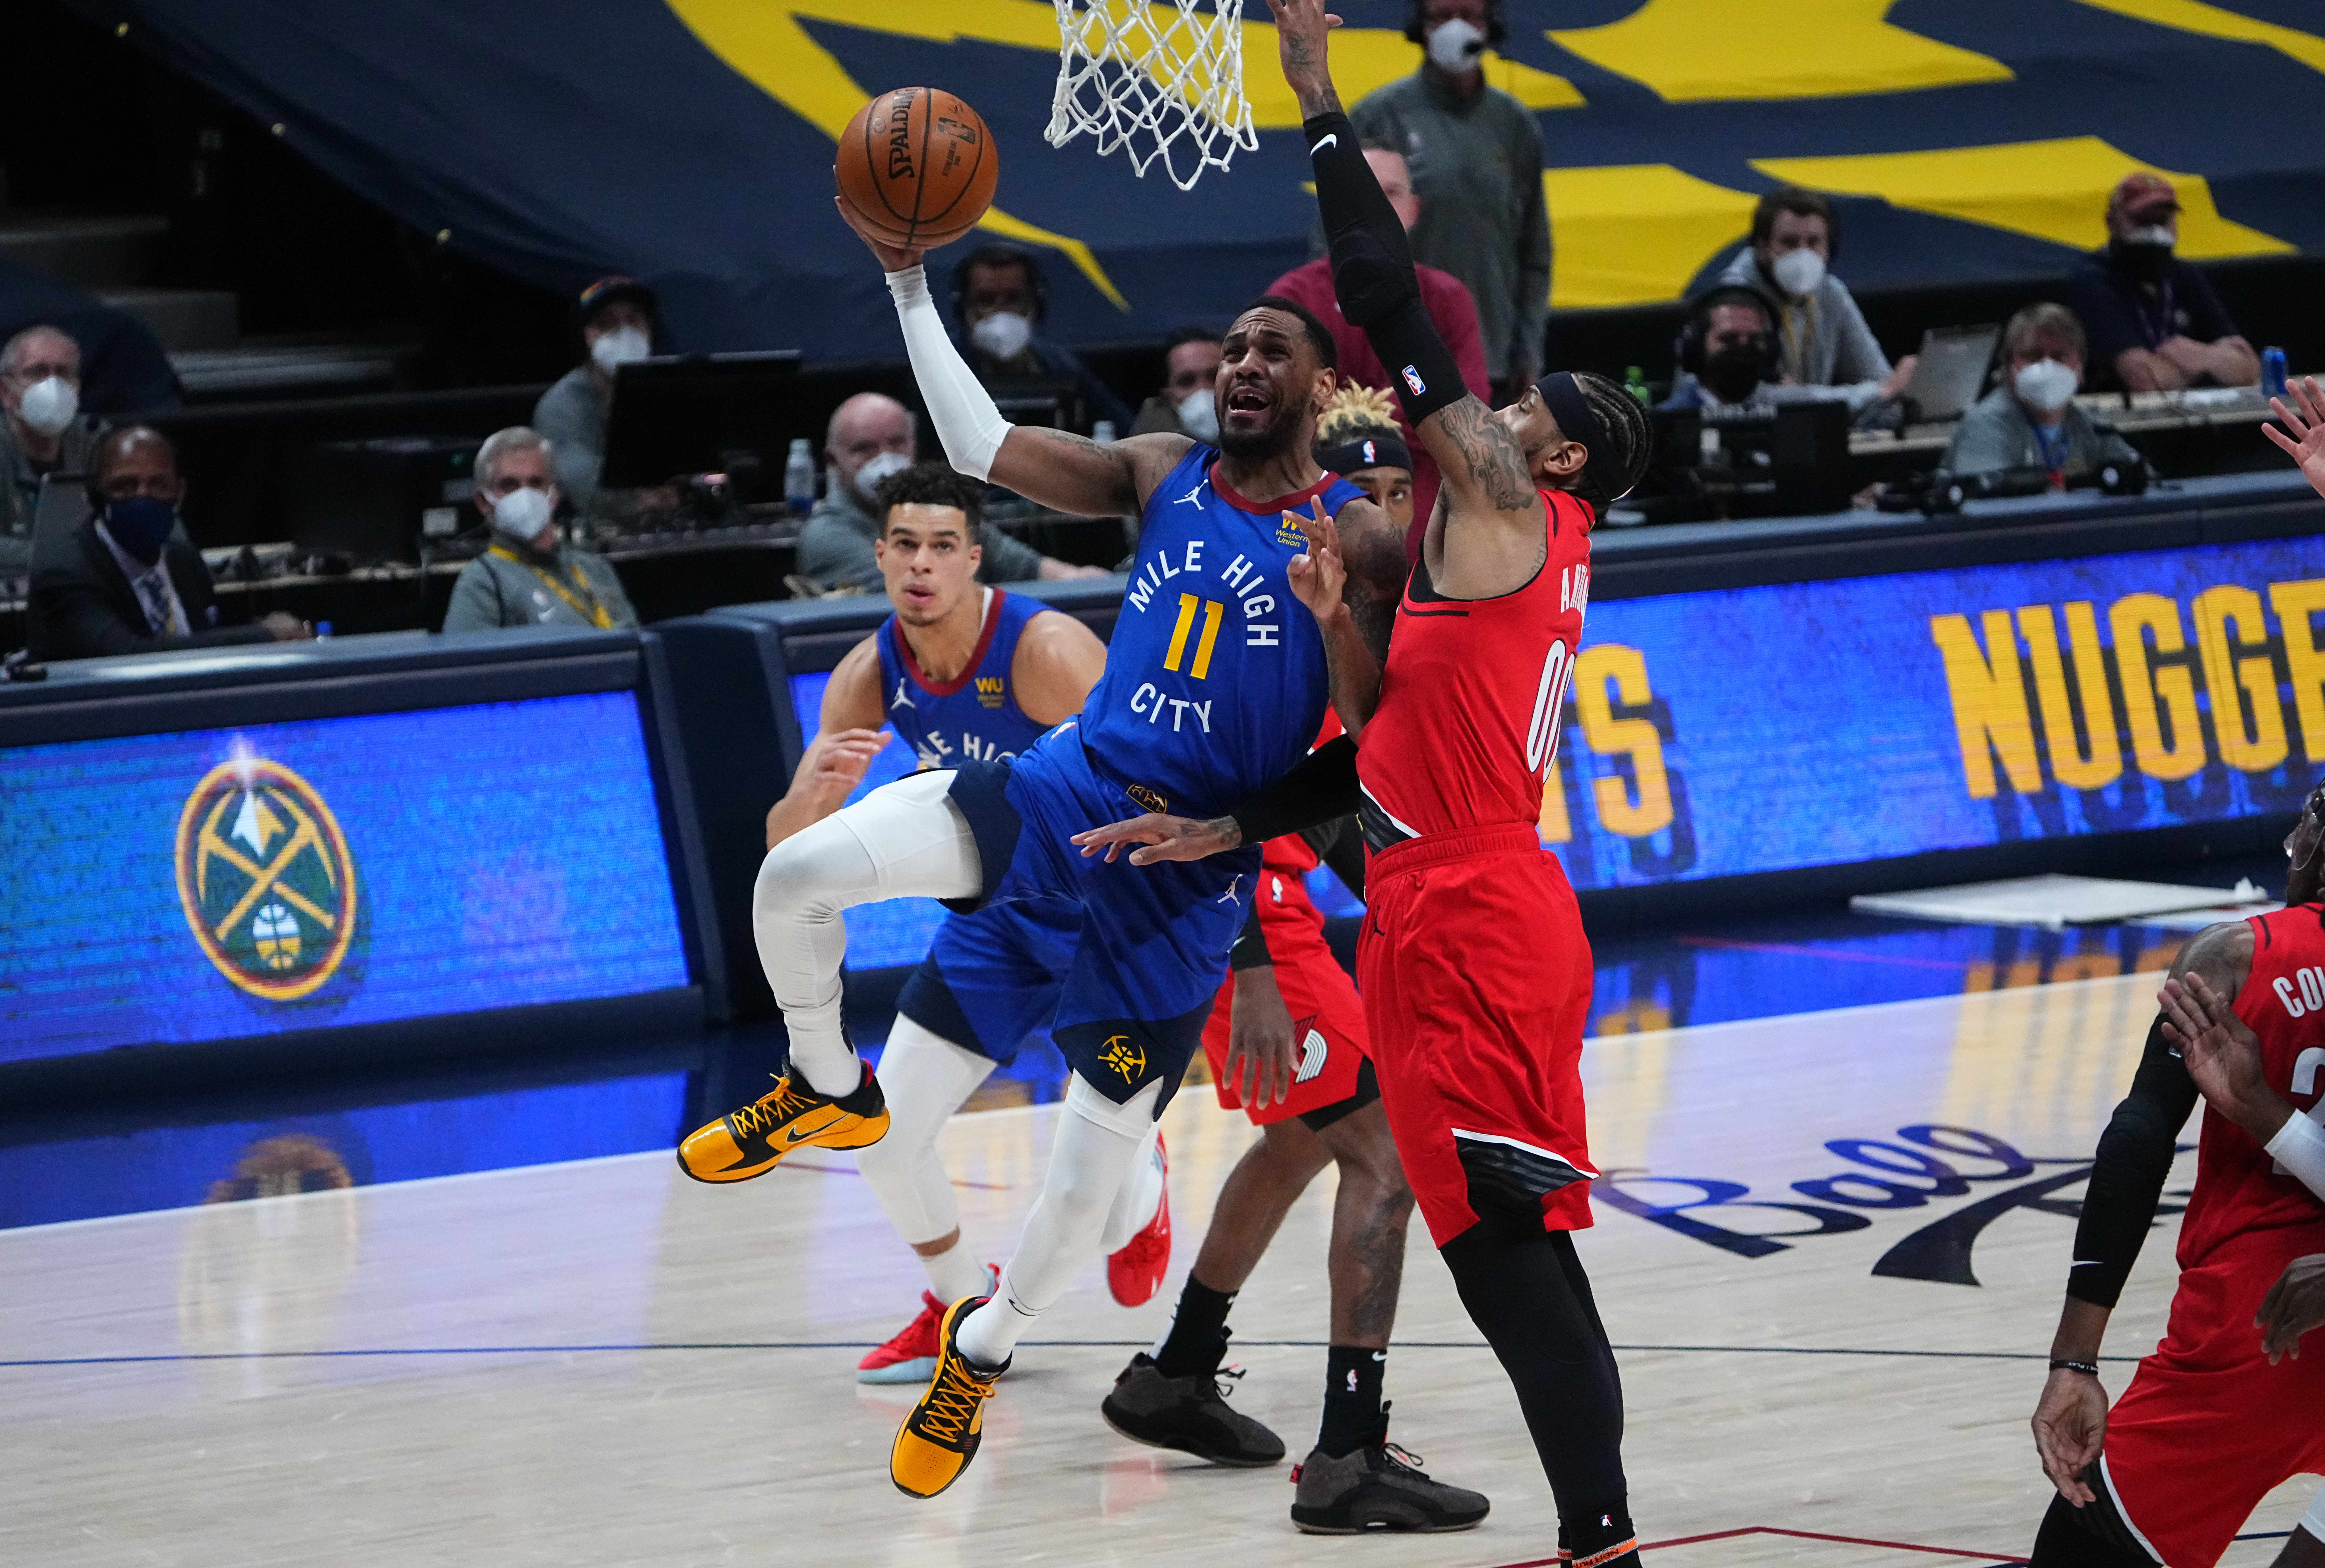 Jun 1, 2021; Denver, Colorado, USA; Denver Nuggets guard Monte Morris (11) shoots the ball past Portland Trail Blazers forward Carmelo Anthony (00) in the second quarter during game five in the first round of the 2021 NBA Playoffs. at Ball Arena. Mandatory Credit: Ron Chenoy-USA TODAY Sports